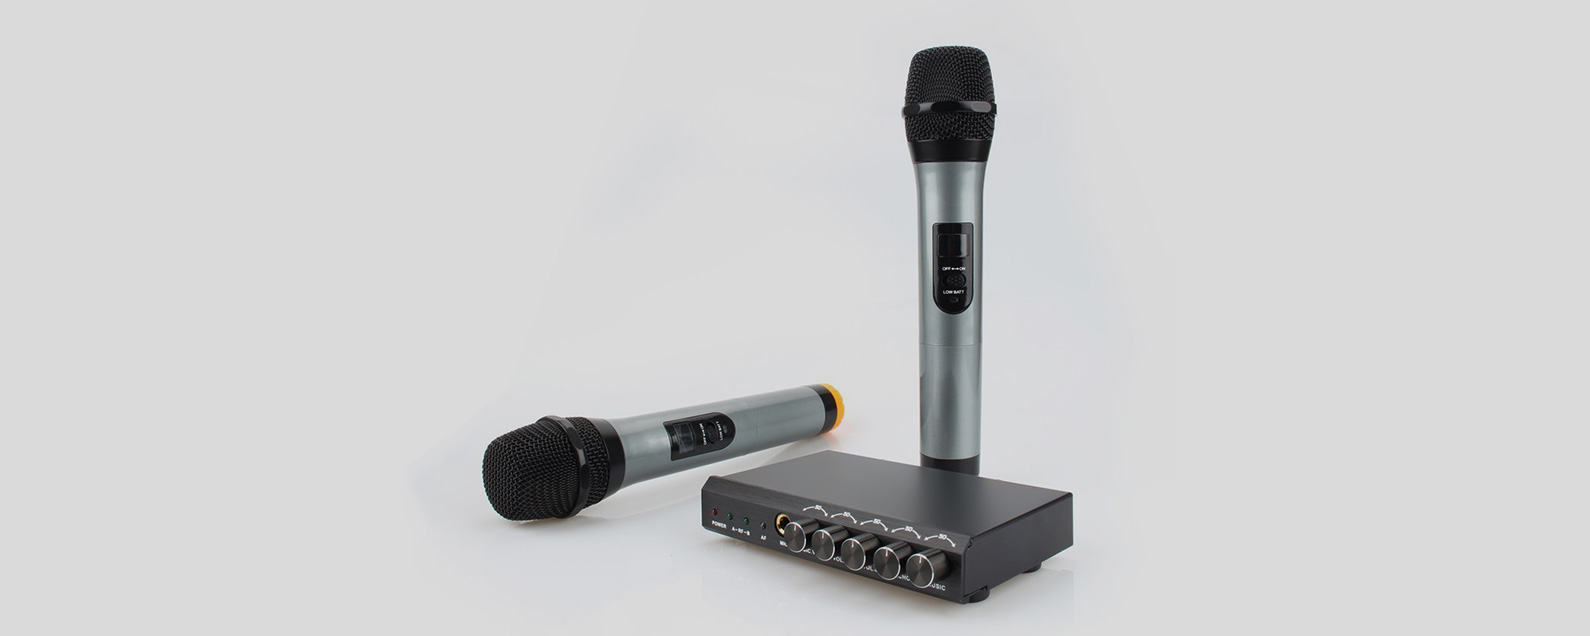 review archeer bluetooth iphone microphone system. Black Bedroom Furniture Sets. Home Design Ideas